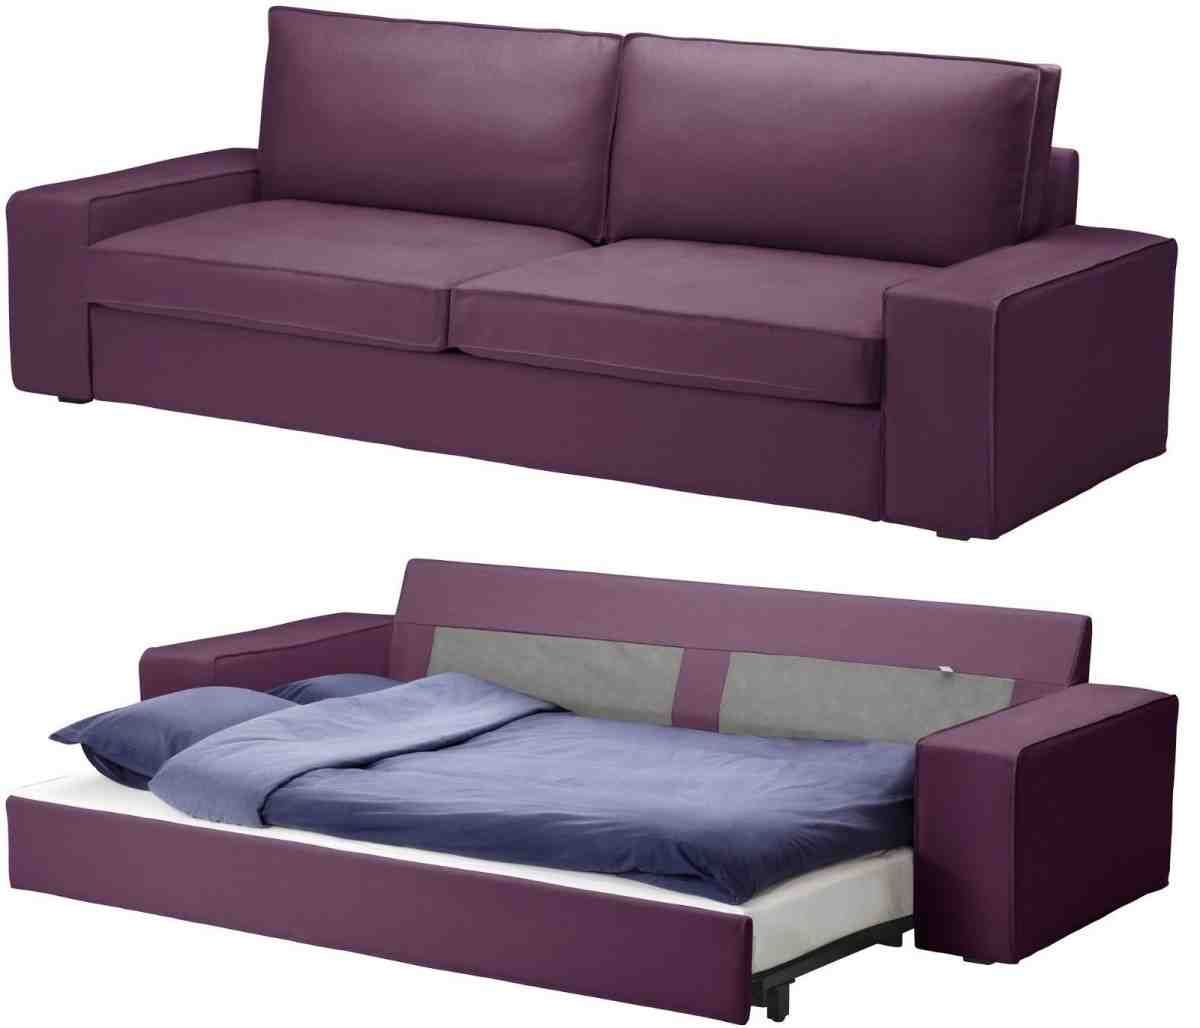 Sofa Bed Convertible Futon Purple Linen Upholstered Chaise Lounge Sleeper Couch Sofafurniture Contemporary Upholstered Chaise Sofa Bed Frame Fabric Sofa Bed